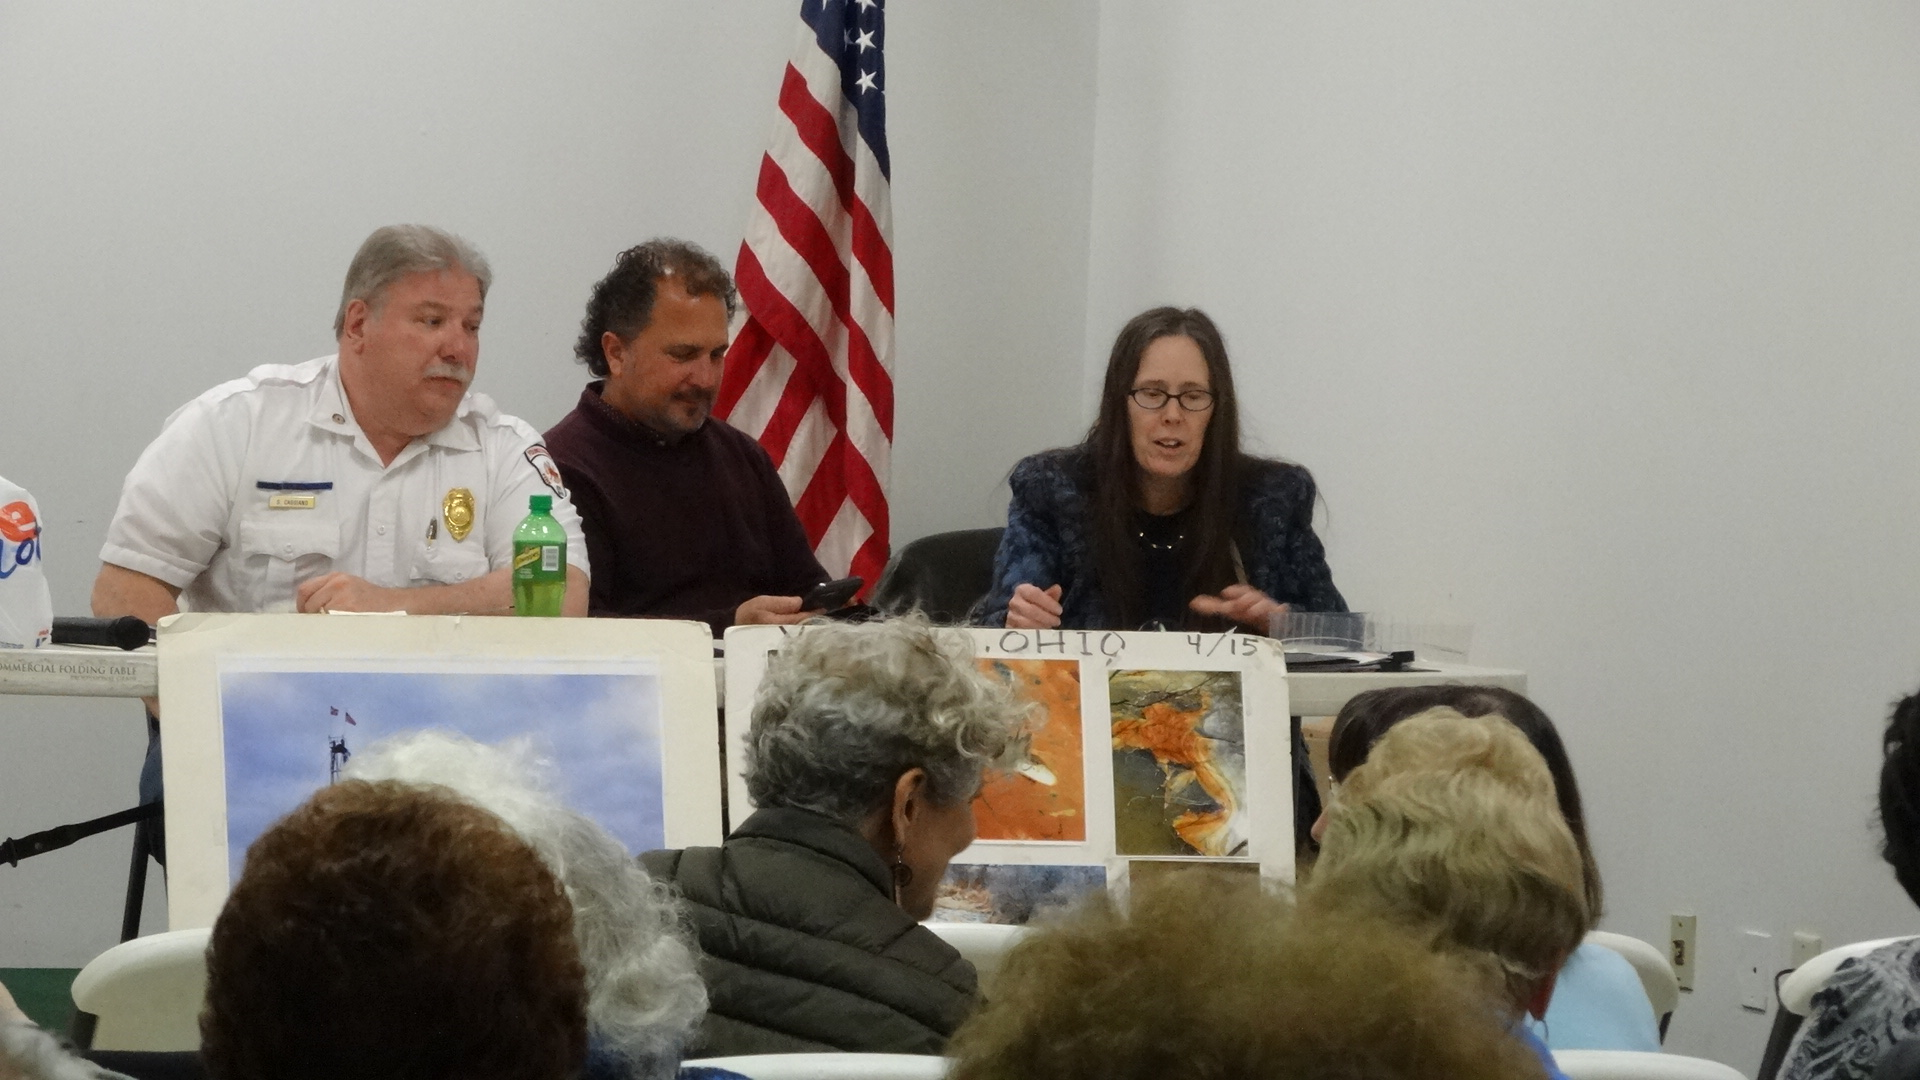 From left: Silverio Caggiano, Rick Hernandez and Jane Spies